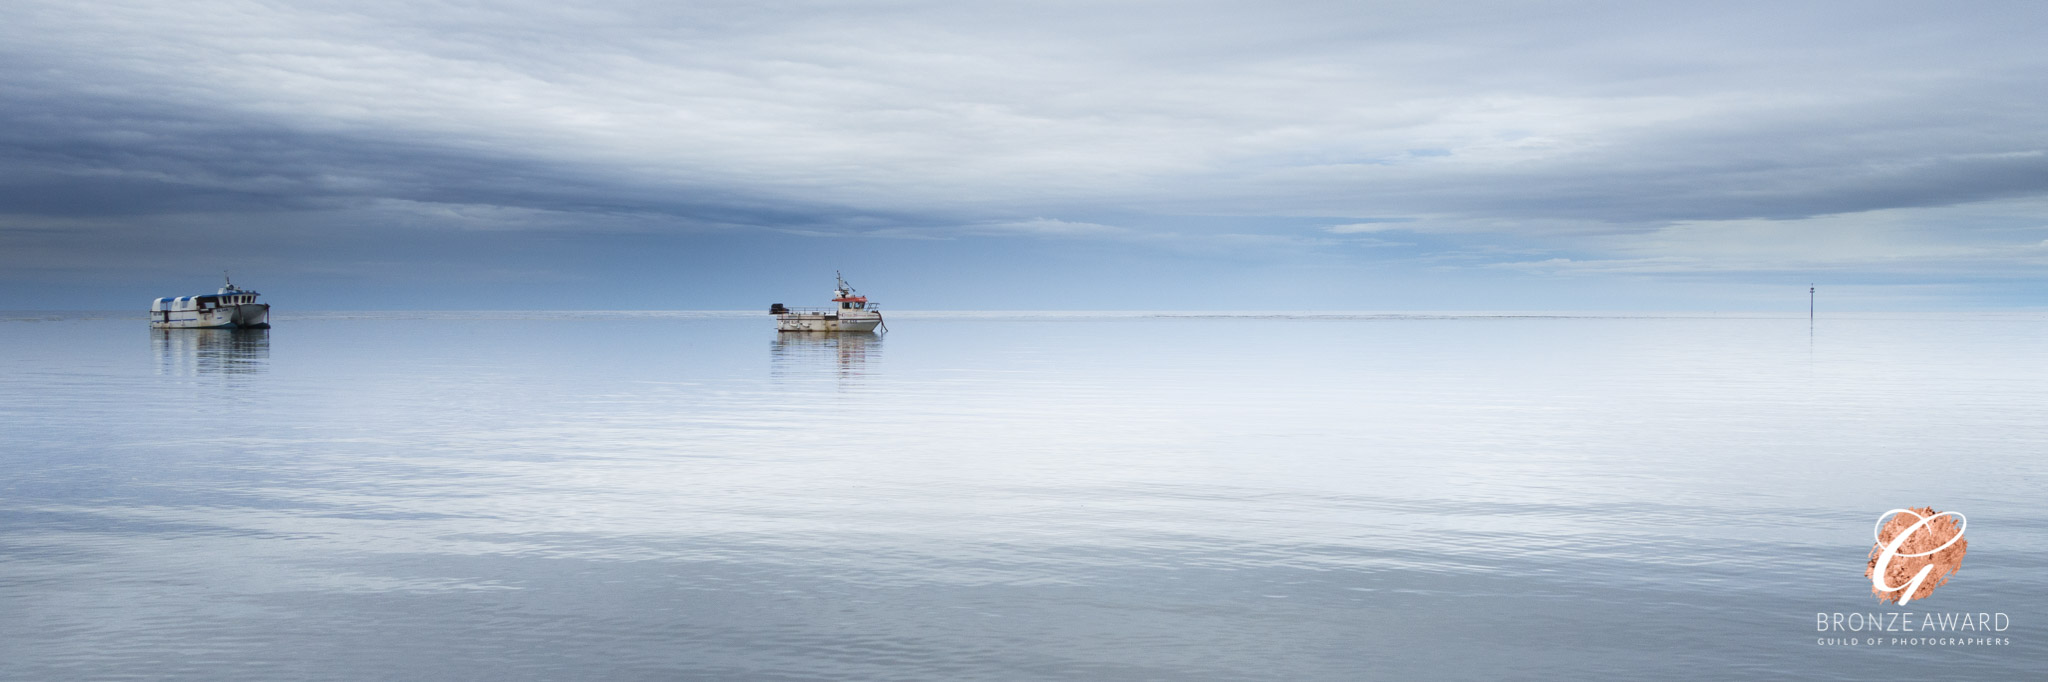 A calm sea reflecting a light but dramatic sky, with fishing boats moored to one side.